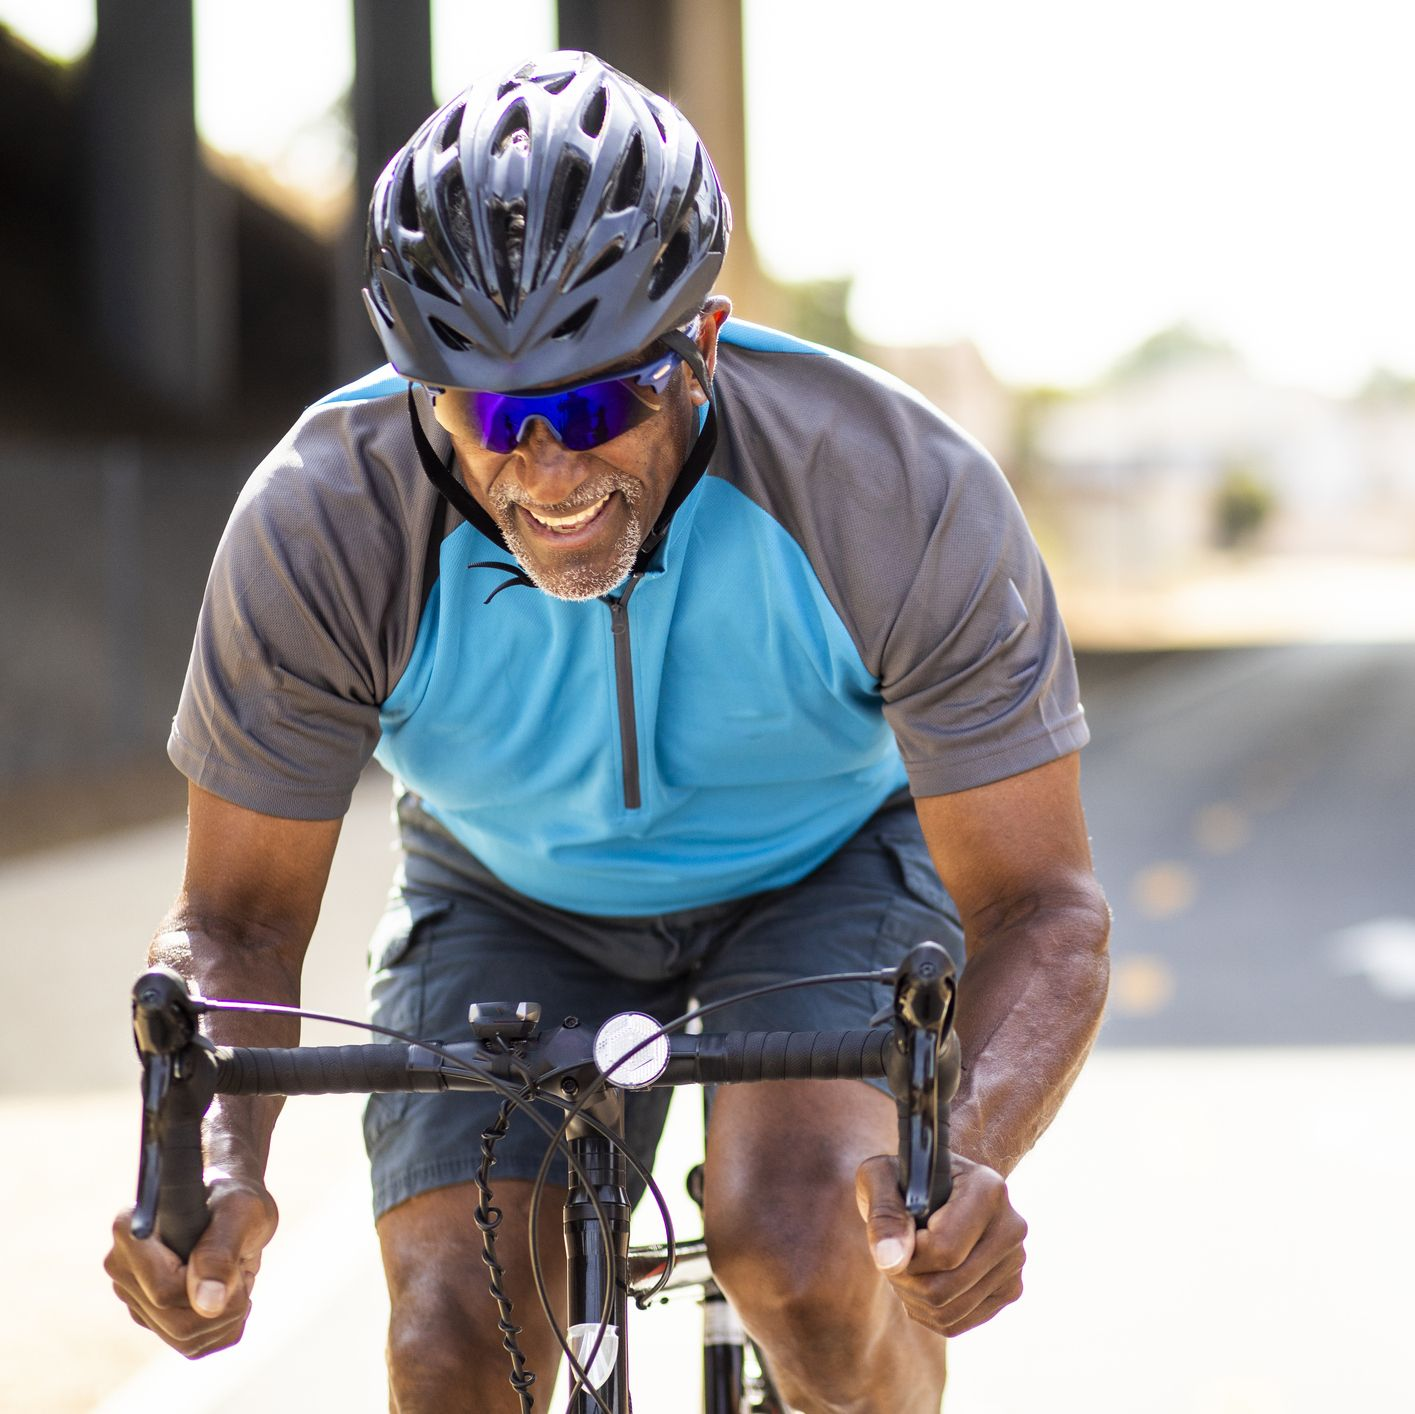 Performing Intervals Twice a Week Can Help You Live Longer